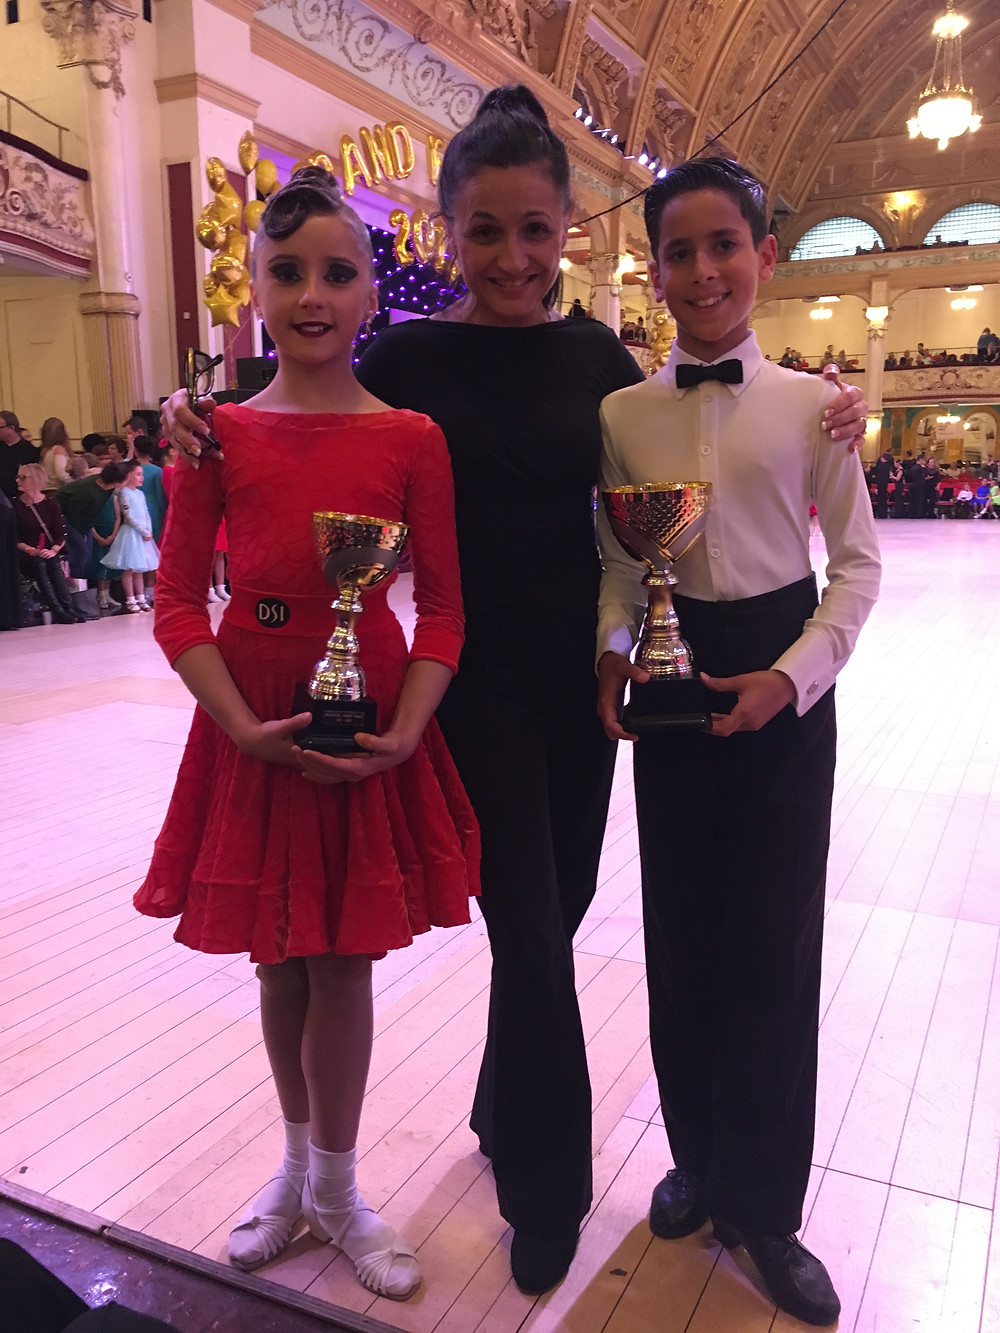 Enrique & Paulina winning Latin couples Silver +